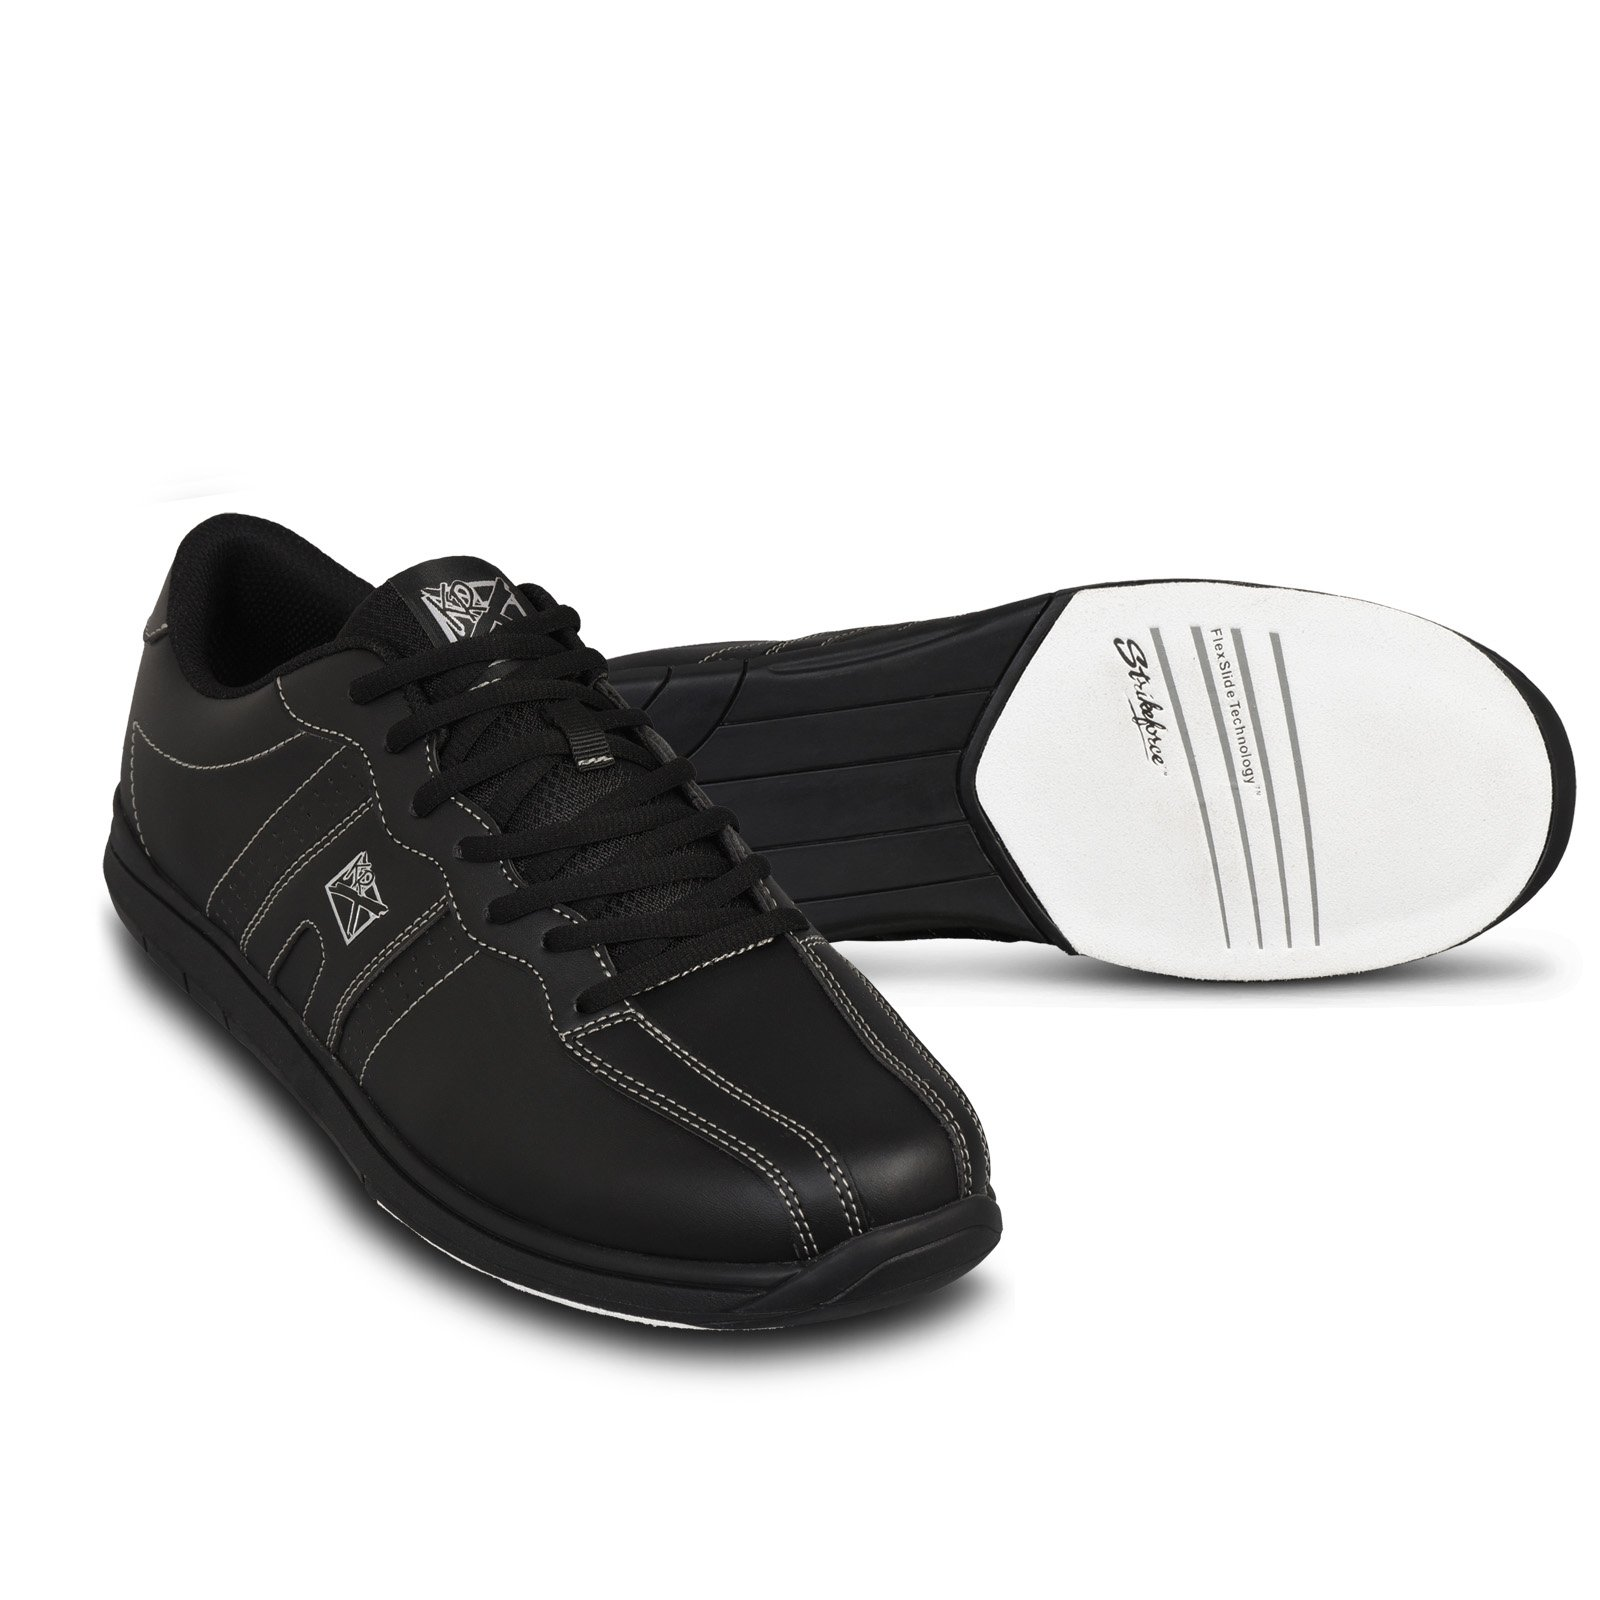 KR Strikeforce Men's O.P.P Wide Bowling Shoes, Black, Size 10 by KR Strikeforce